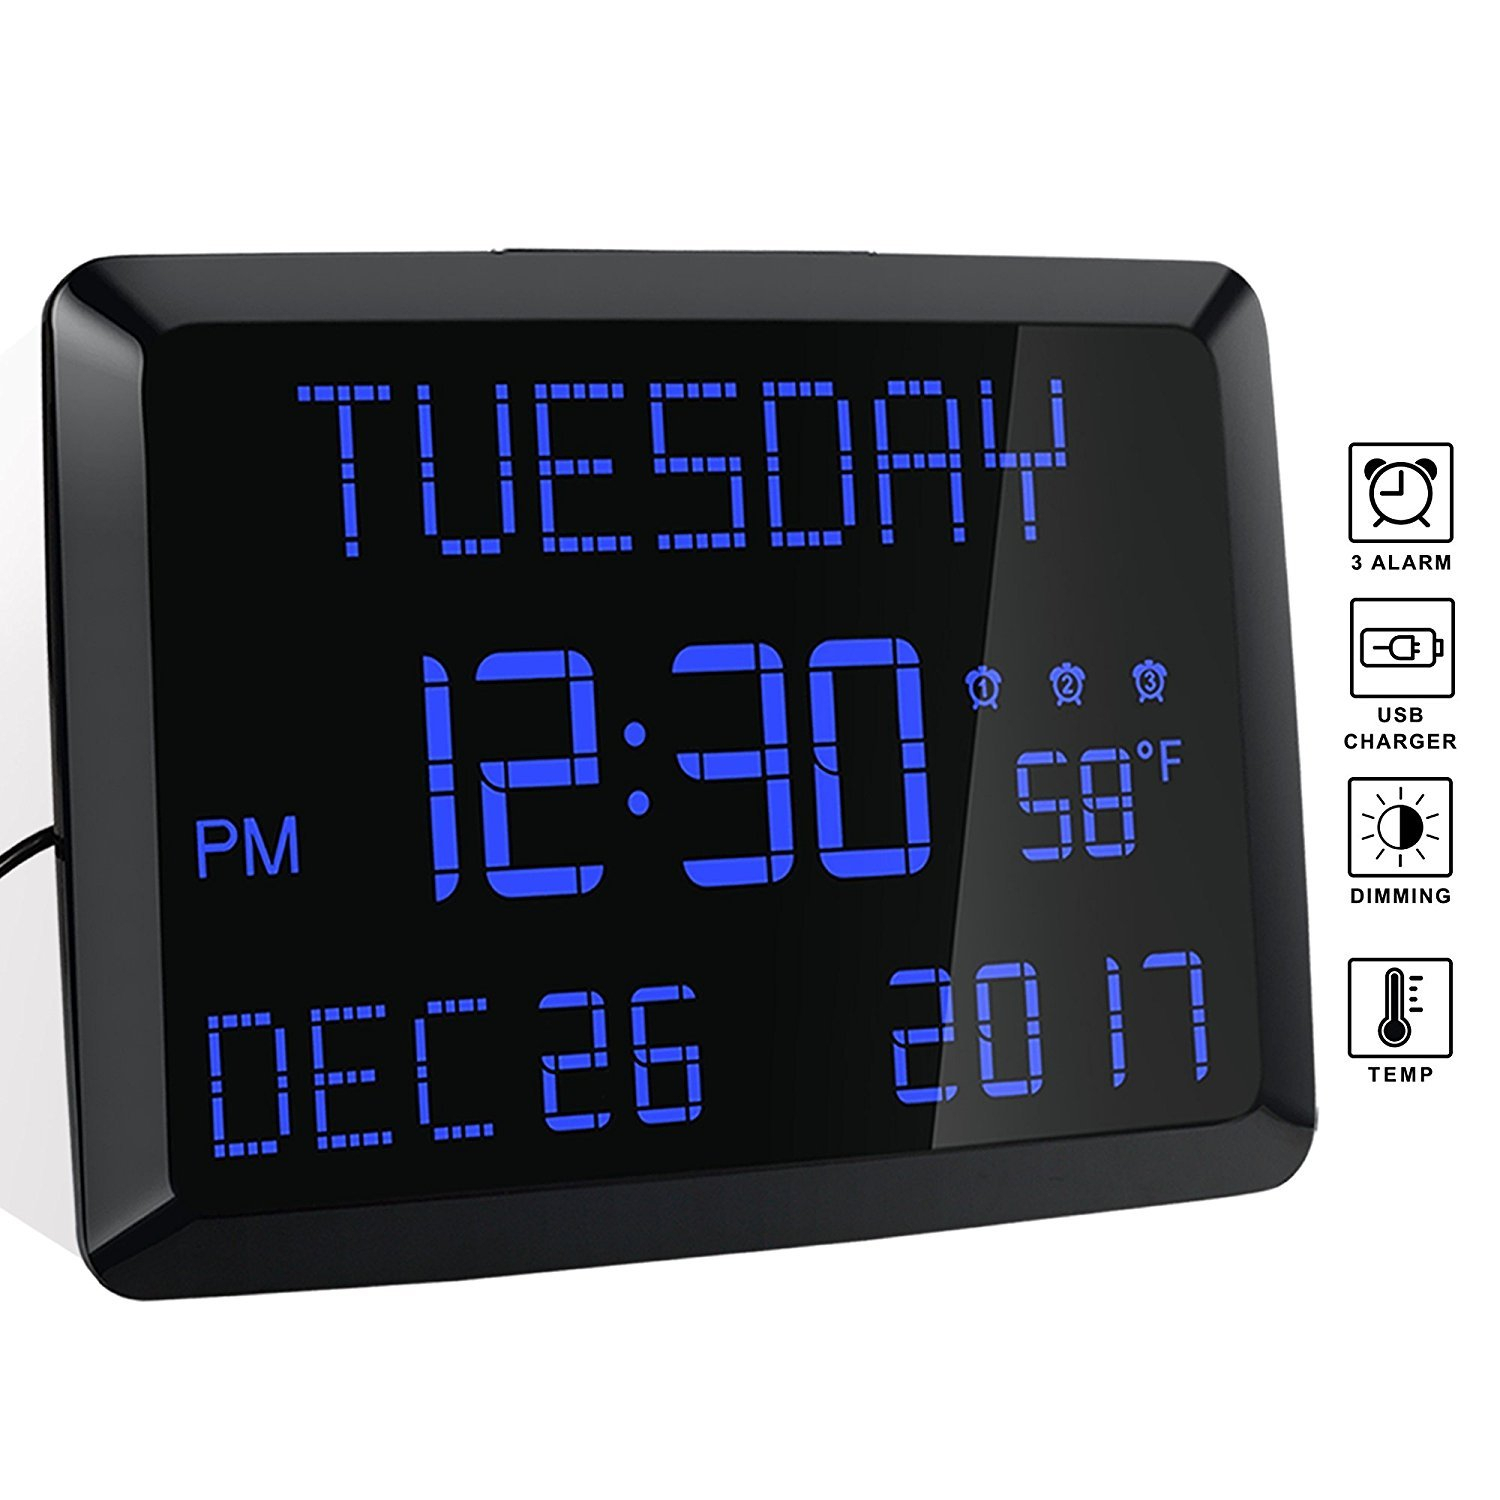 Details About Day Clock, 11.5' Extra Large Display Led Digital Desk And  Wall Calendar Alarm 3 for Extra Large Photo Calendar